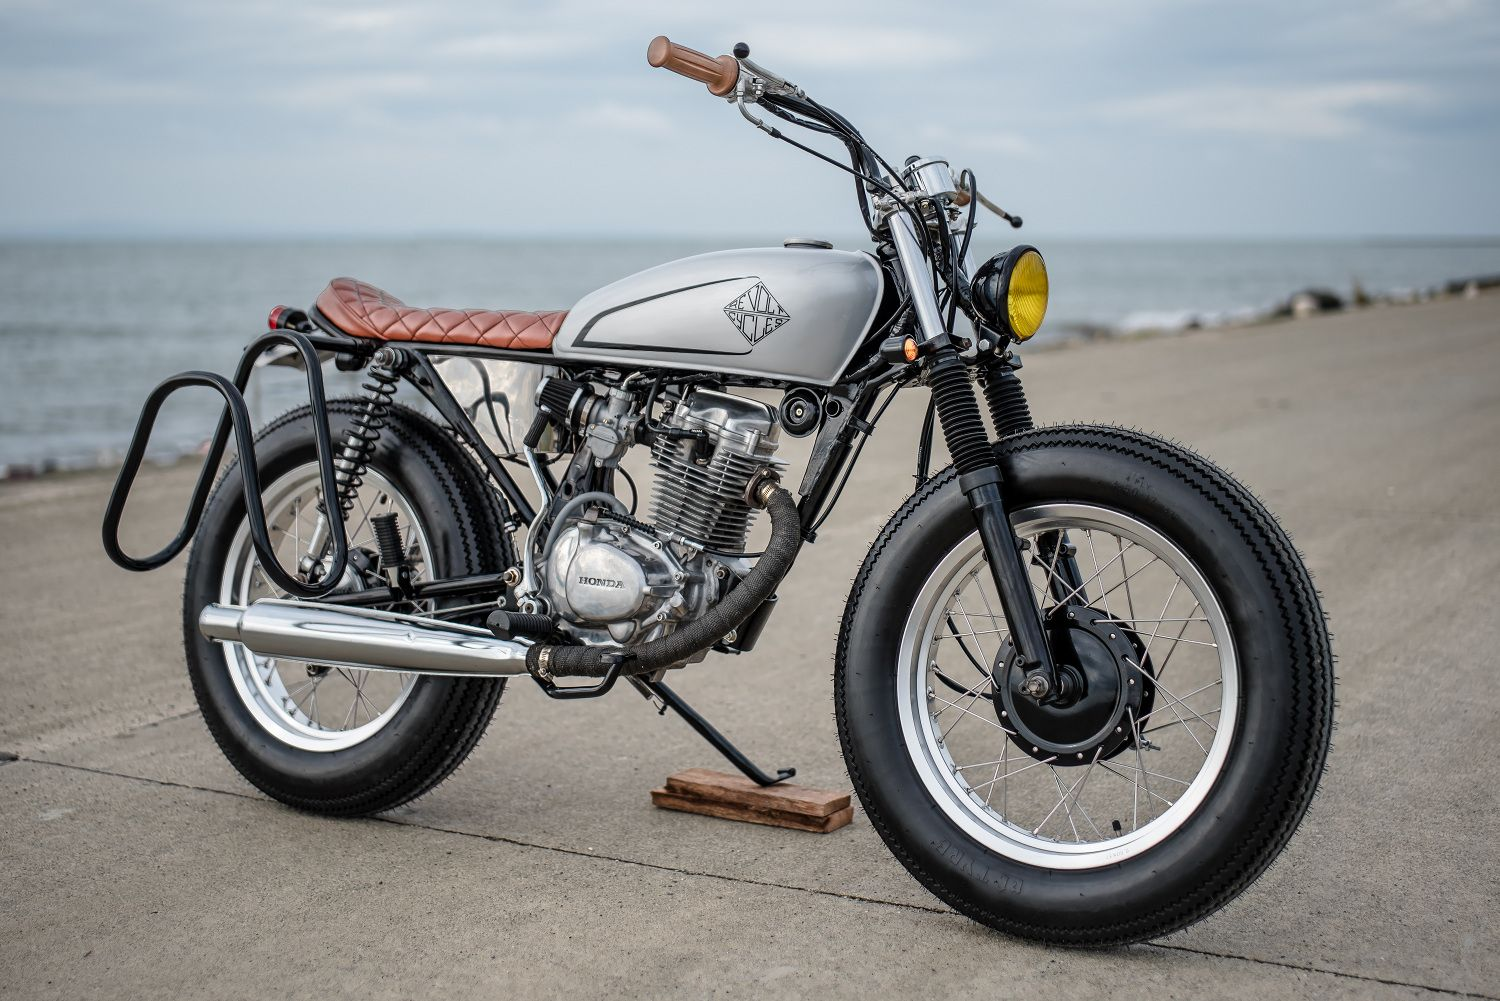 Honda Tmx 155 Brat By Revolt Cycles Surf Bike Honda Cafe Racer Bikes